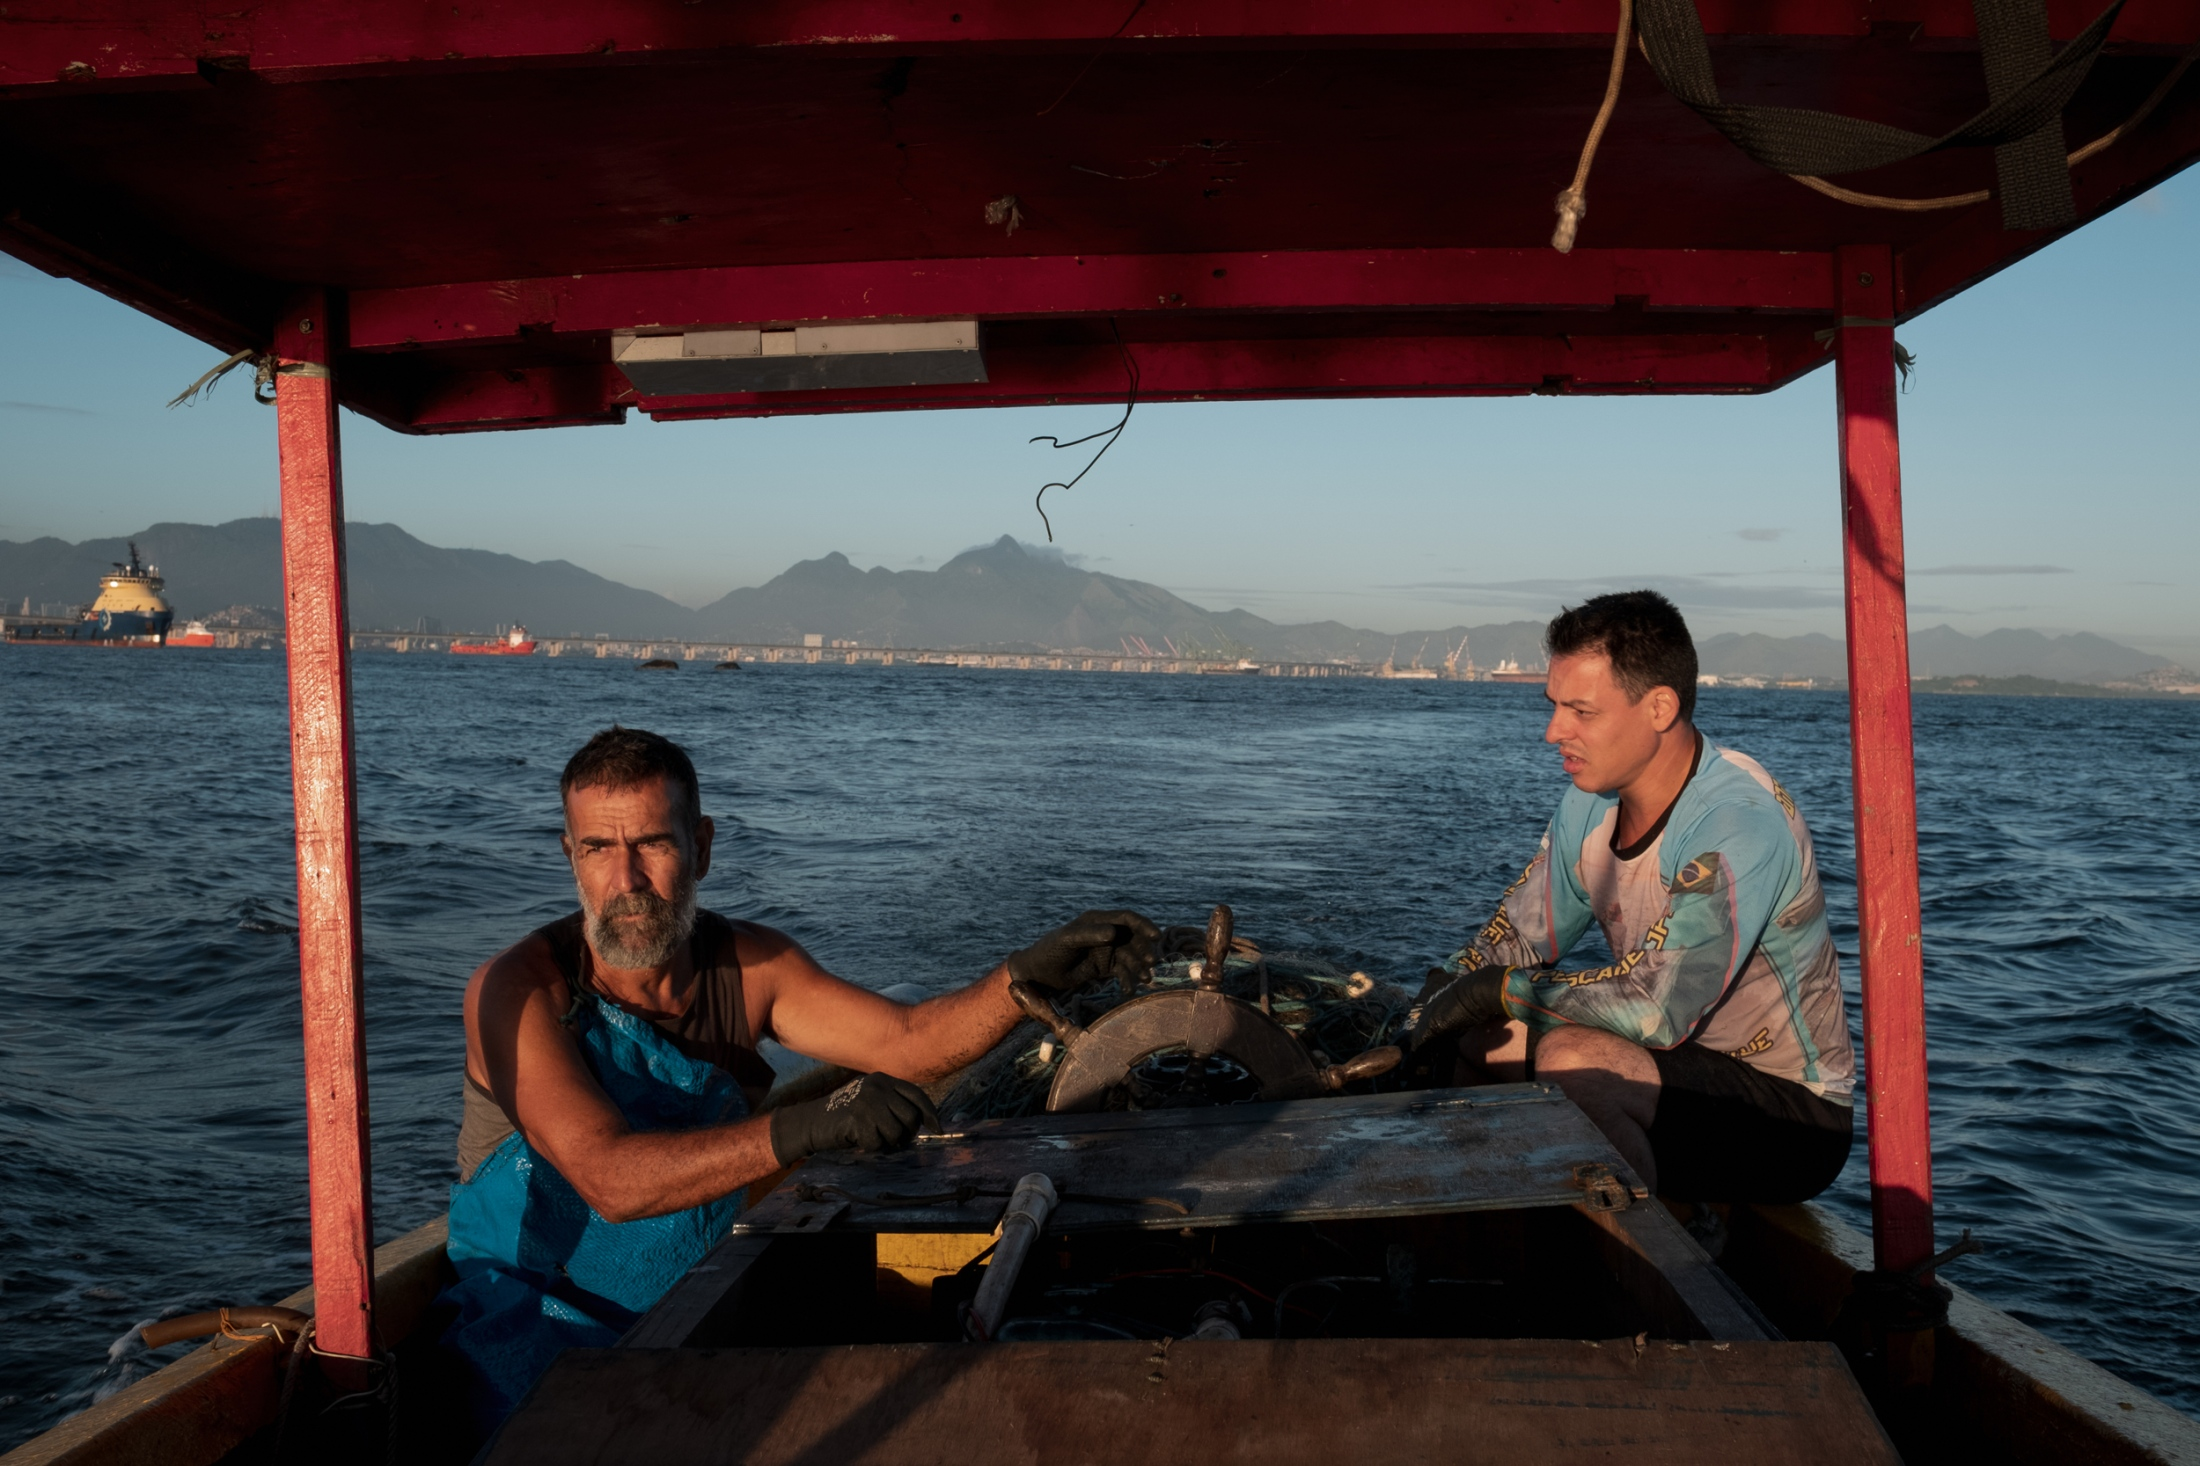 Fabio lives in the nearby favela of Roquette and has been fishing with Ataíde, who taught him. He works in a chemical plant on the other side of the bay, but still occasionally helps out Ataíde for some fish to bring home to his family. Ataide needs the help as hauling the nets by himself has become too difficult.